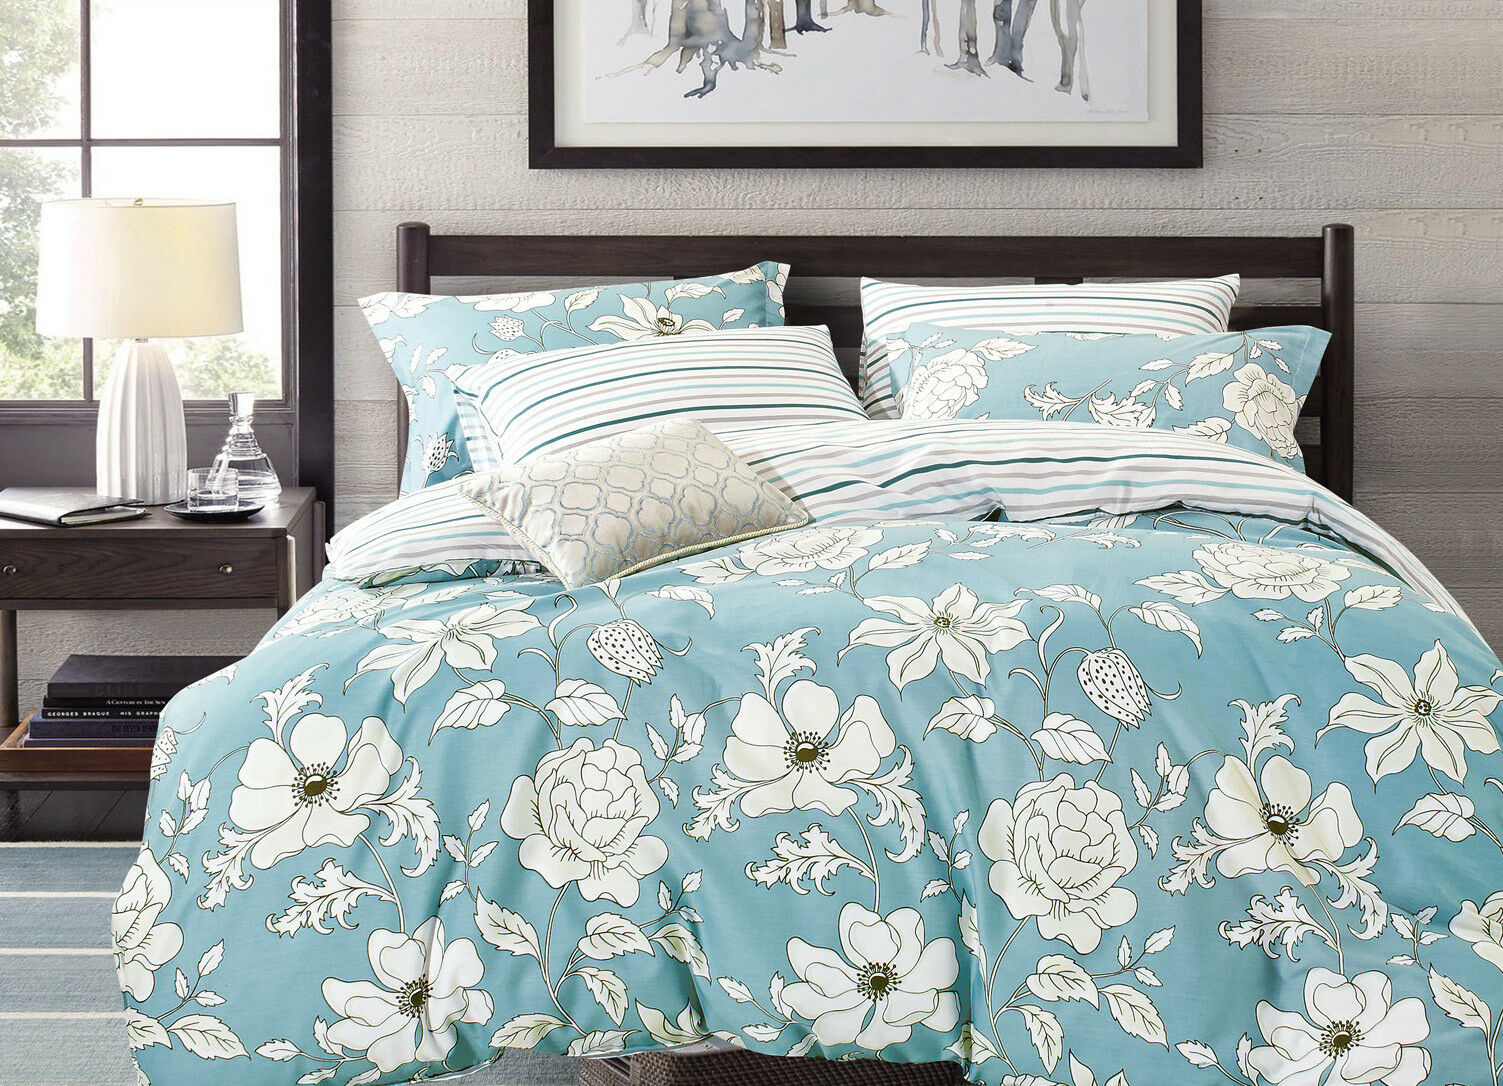 Aiking Home 3PC 100 Cotton Printed Duvet Cover Set Queen Size MultiStyle